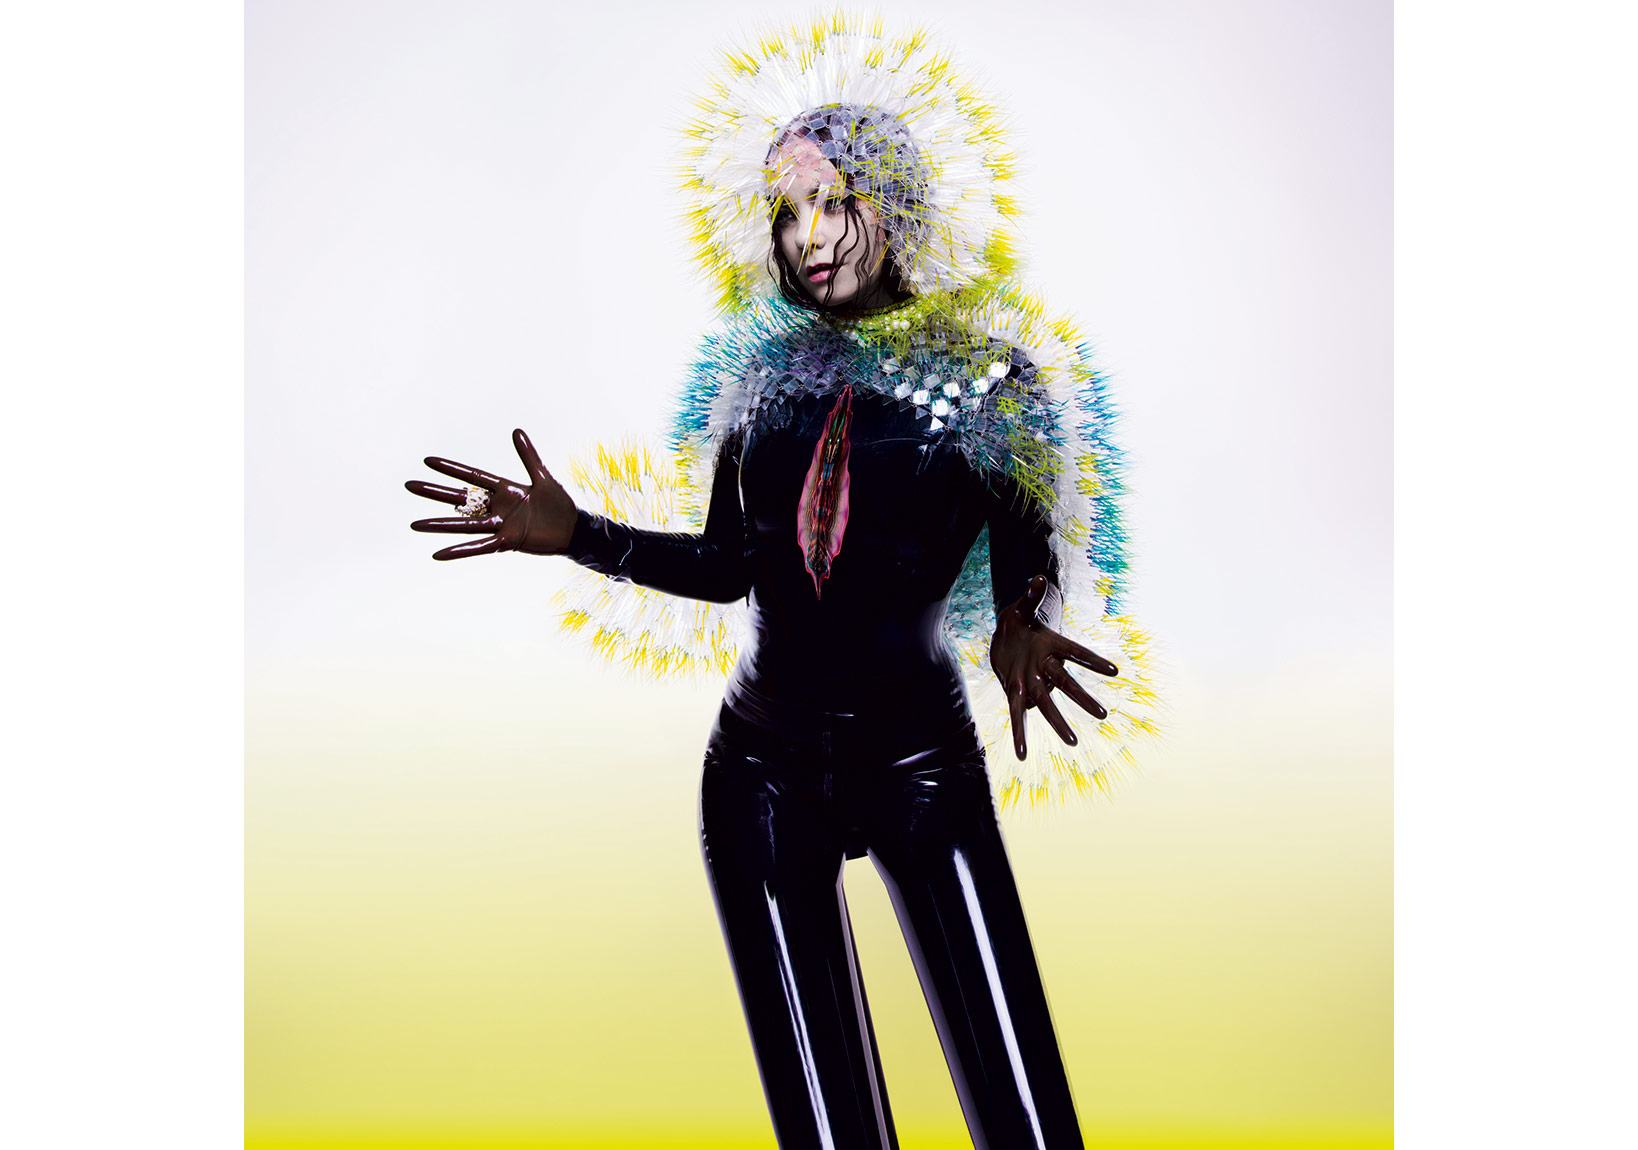 Björk, Vulnicura, 2015Copyright © 2015 Inez and Vinoodh. Image courtesy of Wellhart/One Little Indian